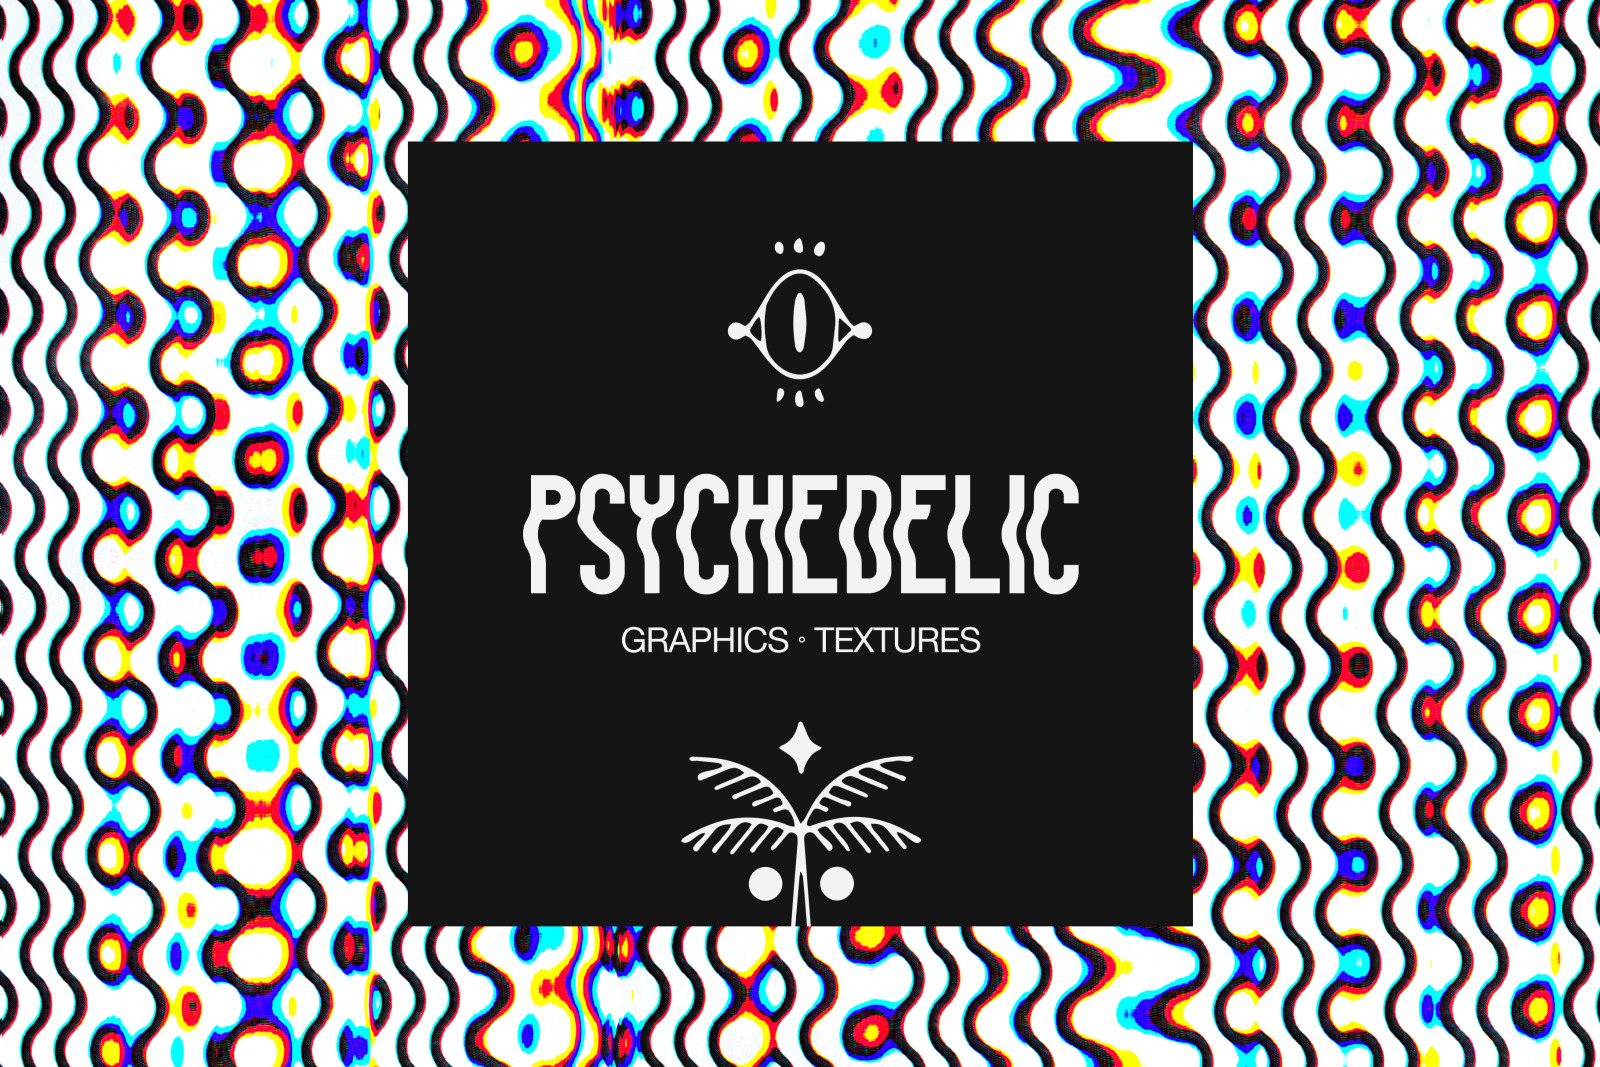 Psychedelic Symbols and Glitched Textures. Magic Surreal Graphics